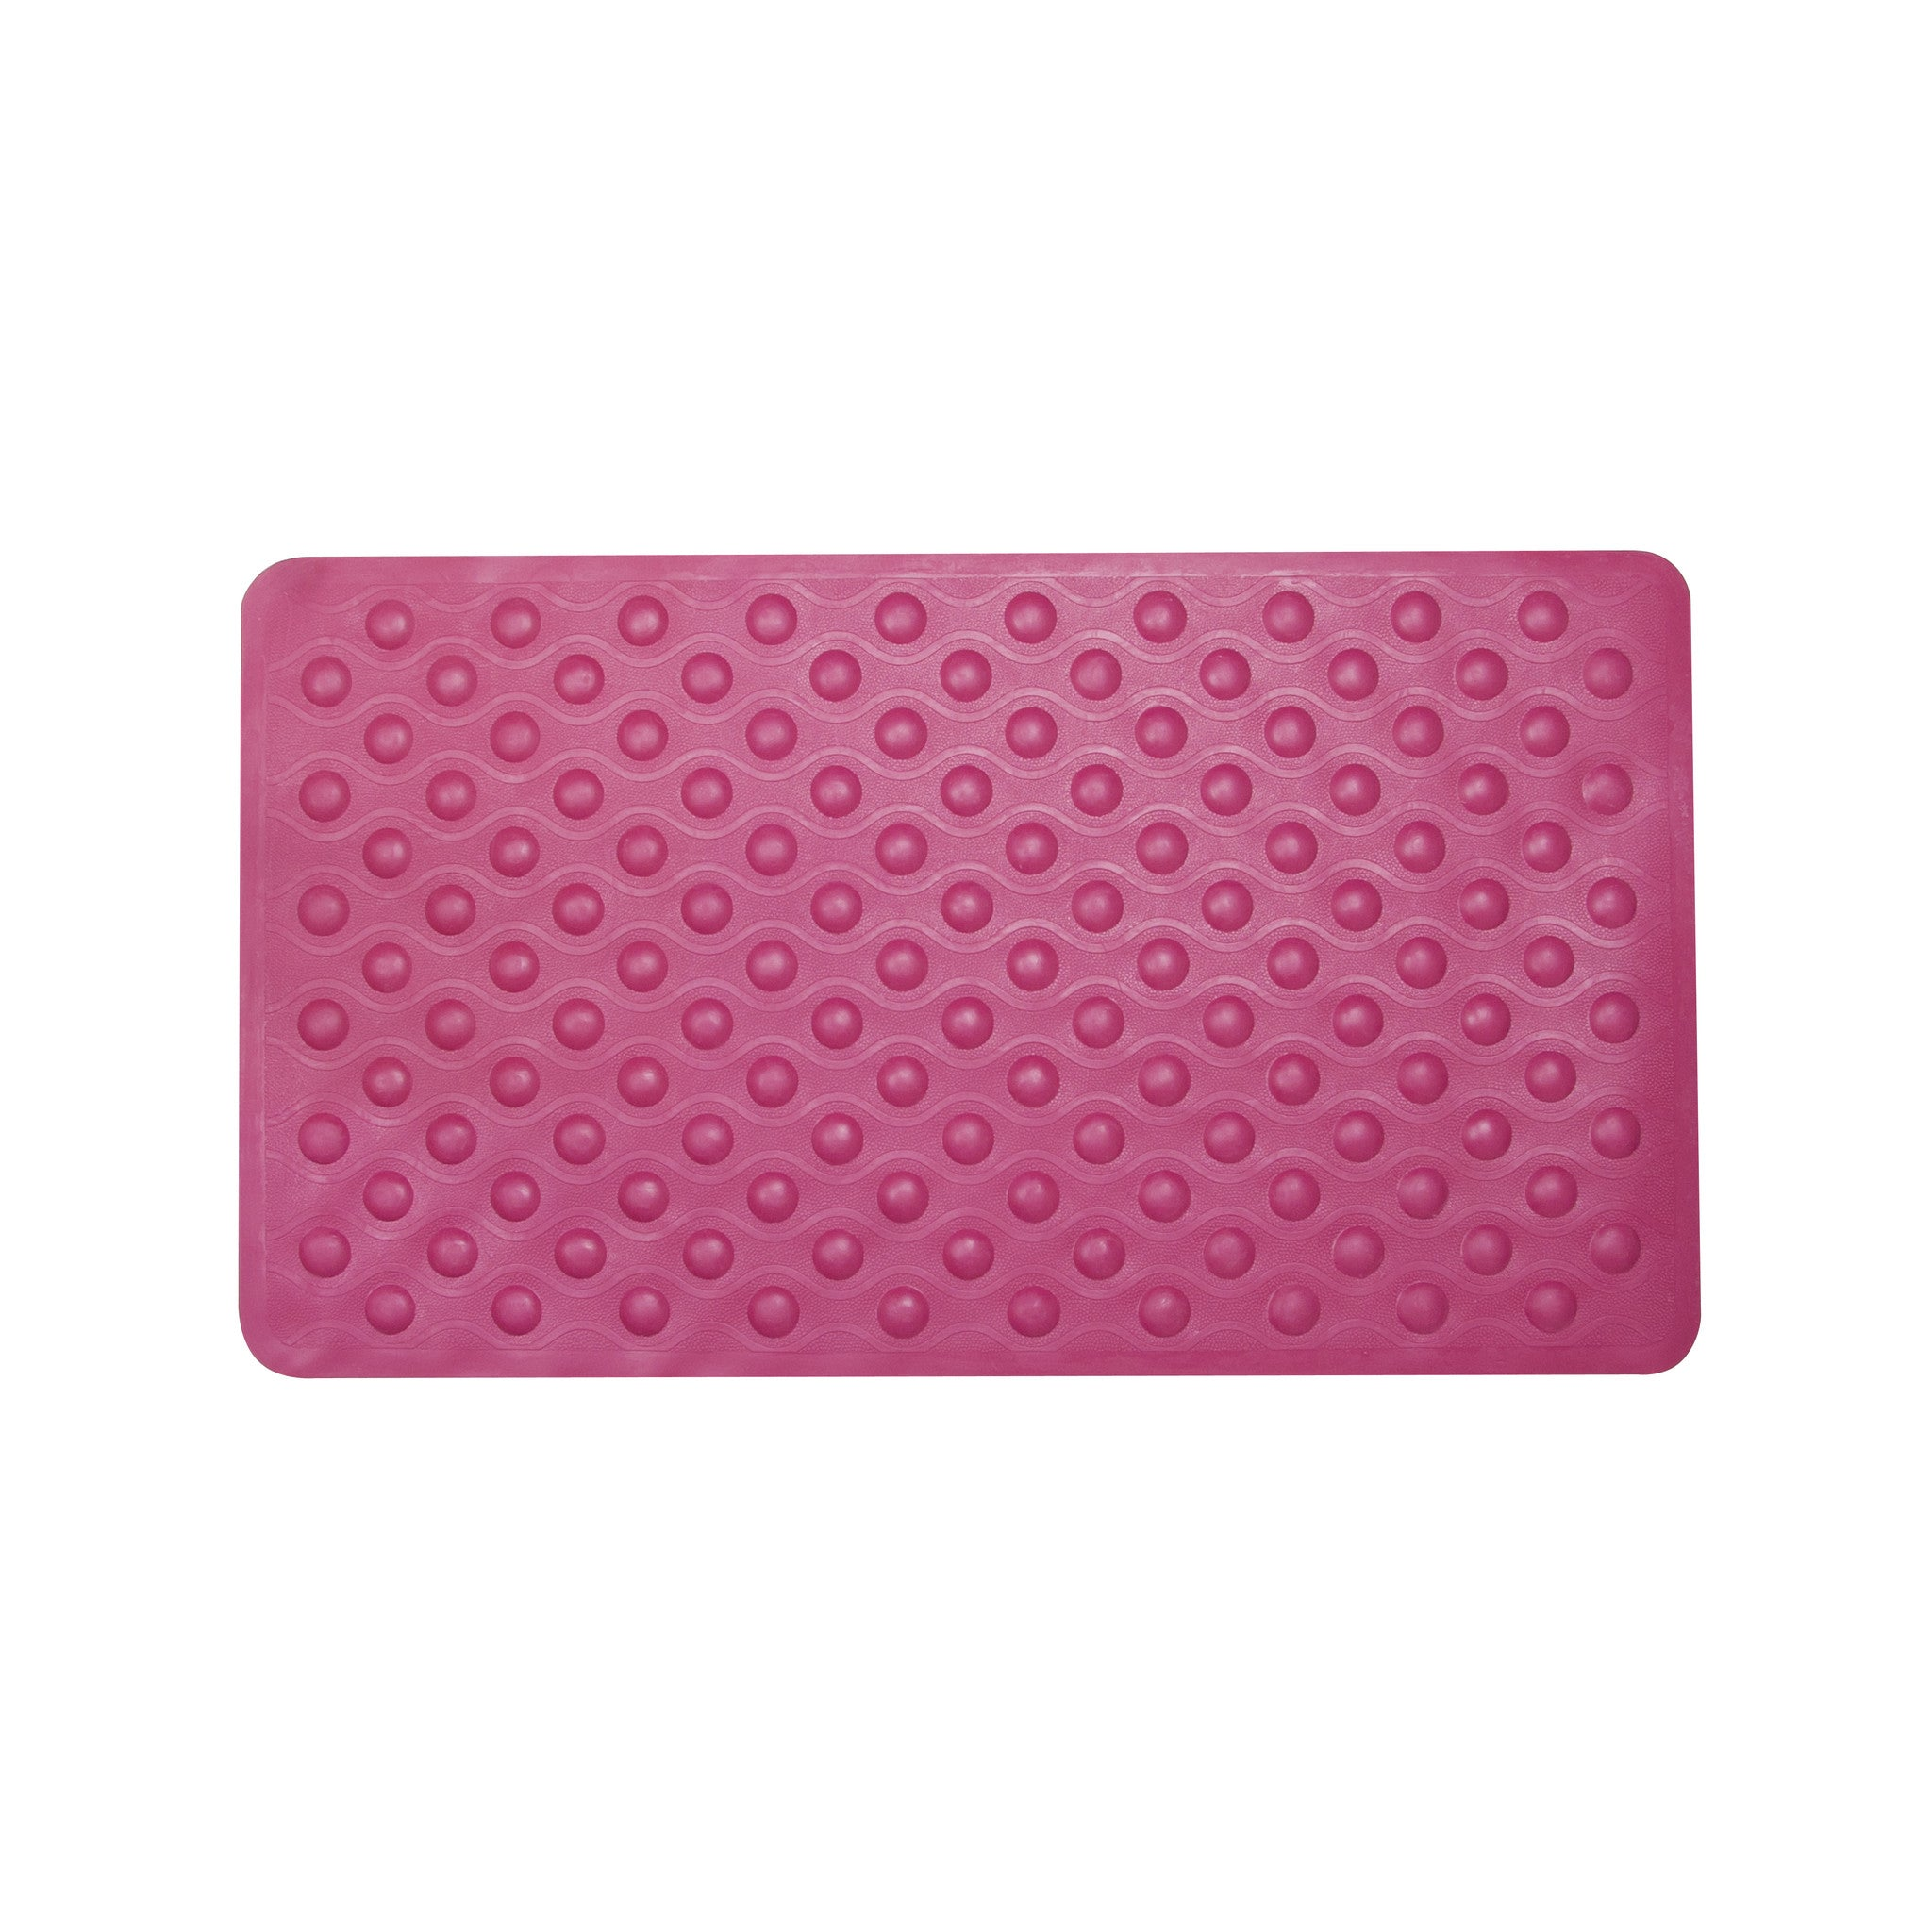 Sabichi Bubble Rubber Bath Mat – Homely Ng